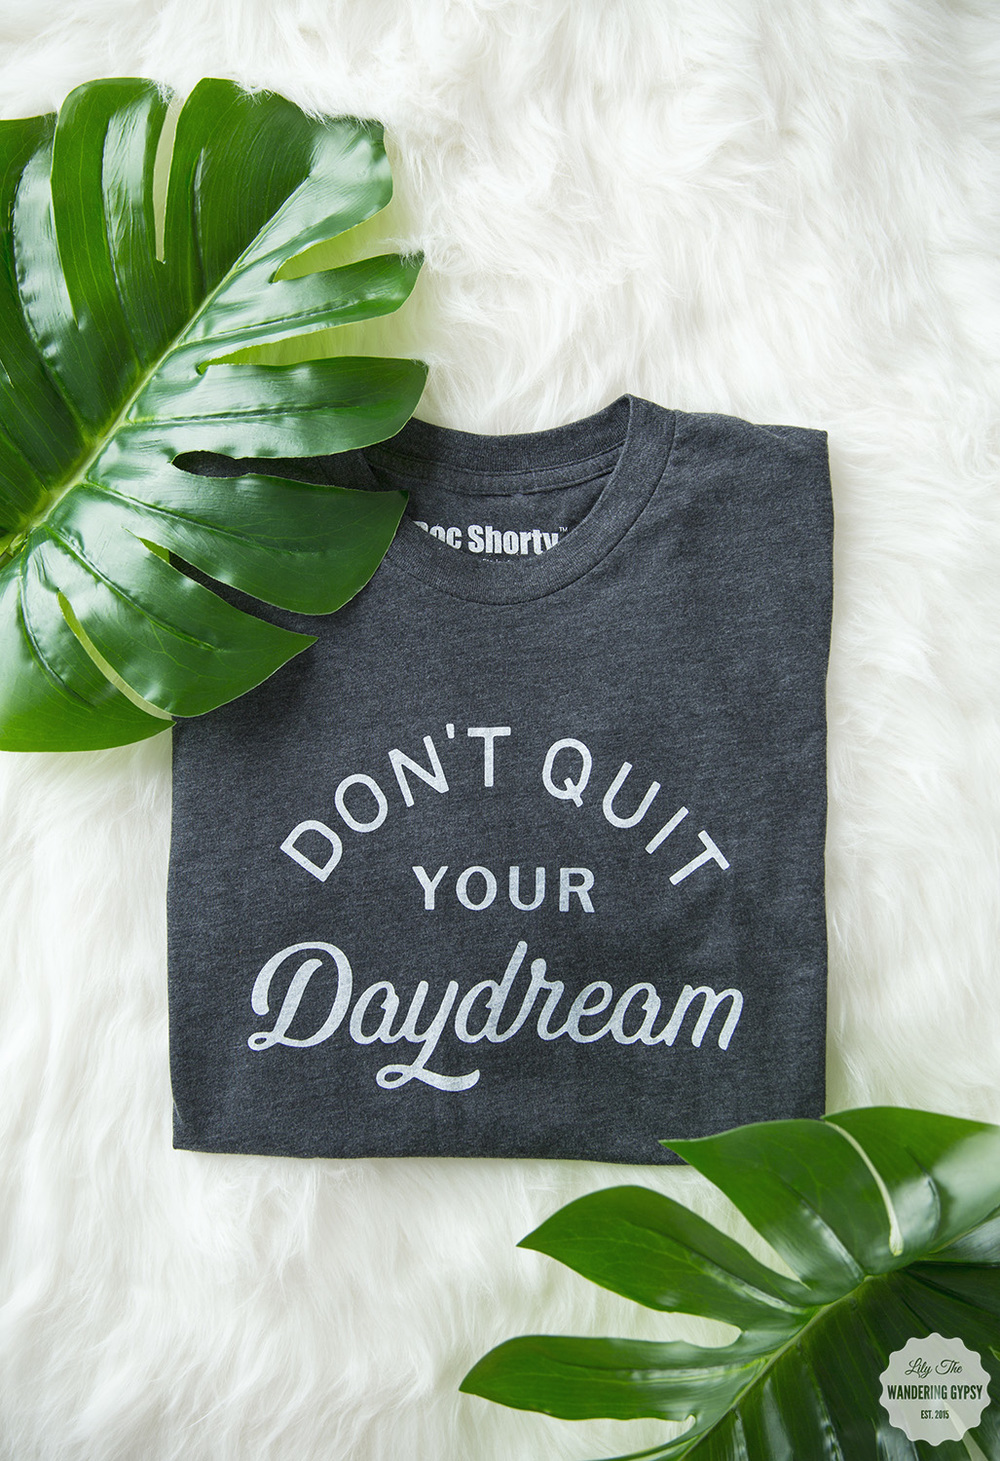 don't quite your daydream tee